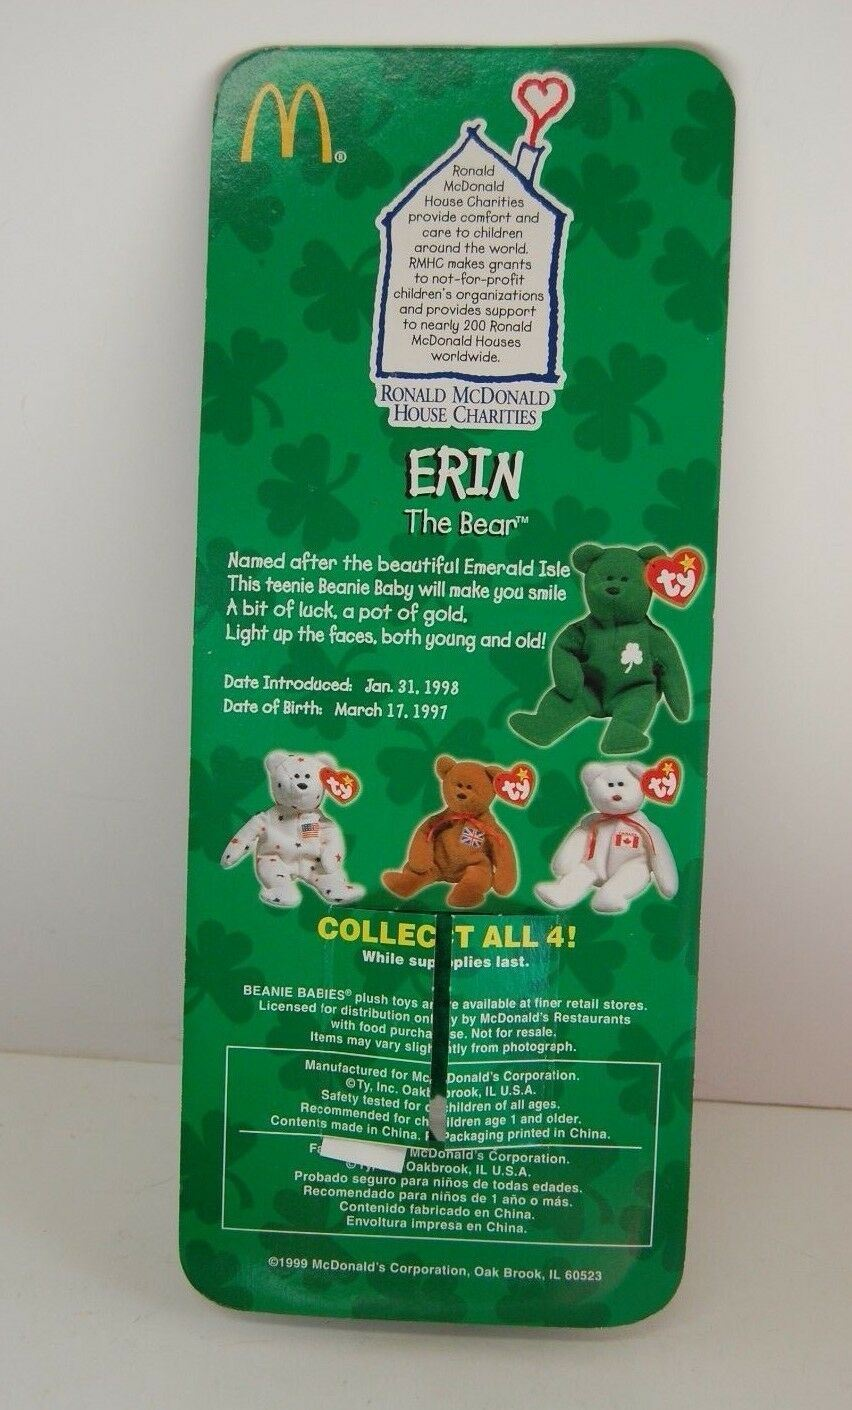 Erin The Bear-1997 McDonald's Ty Beanie Baby Collectible toys